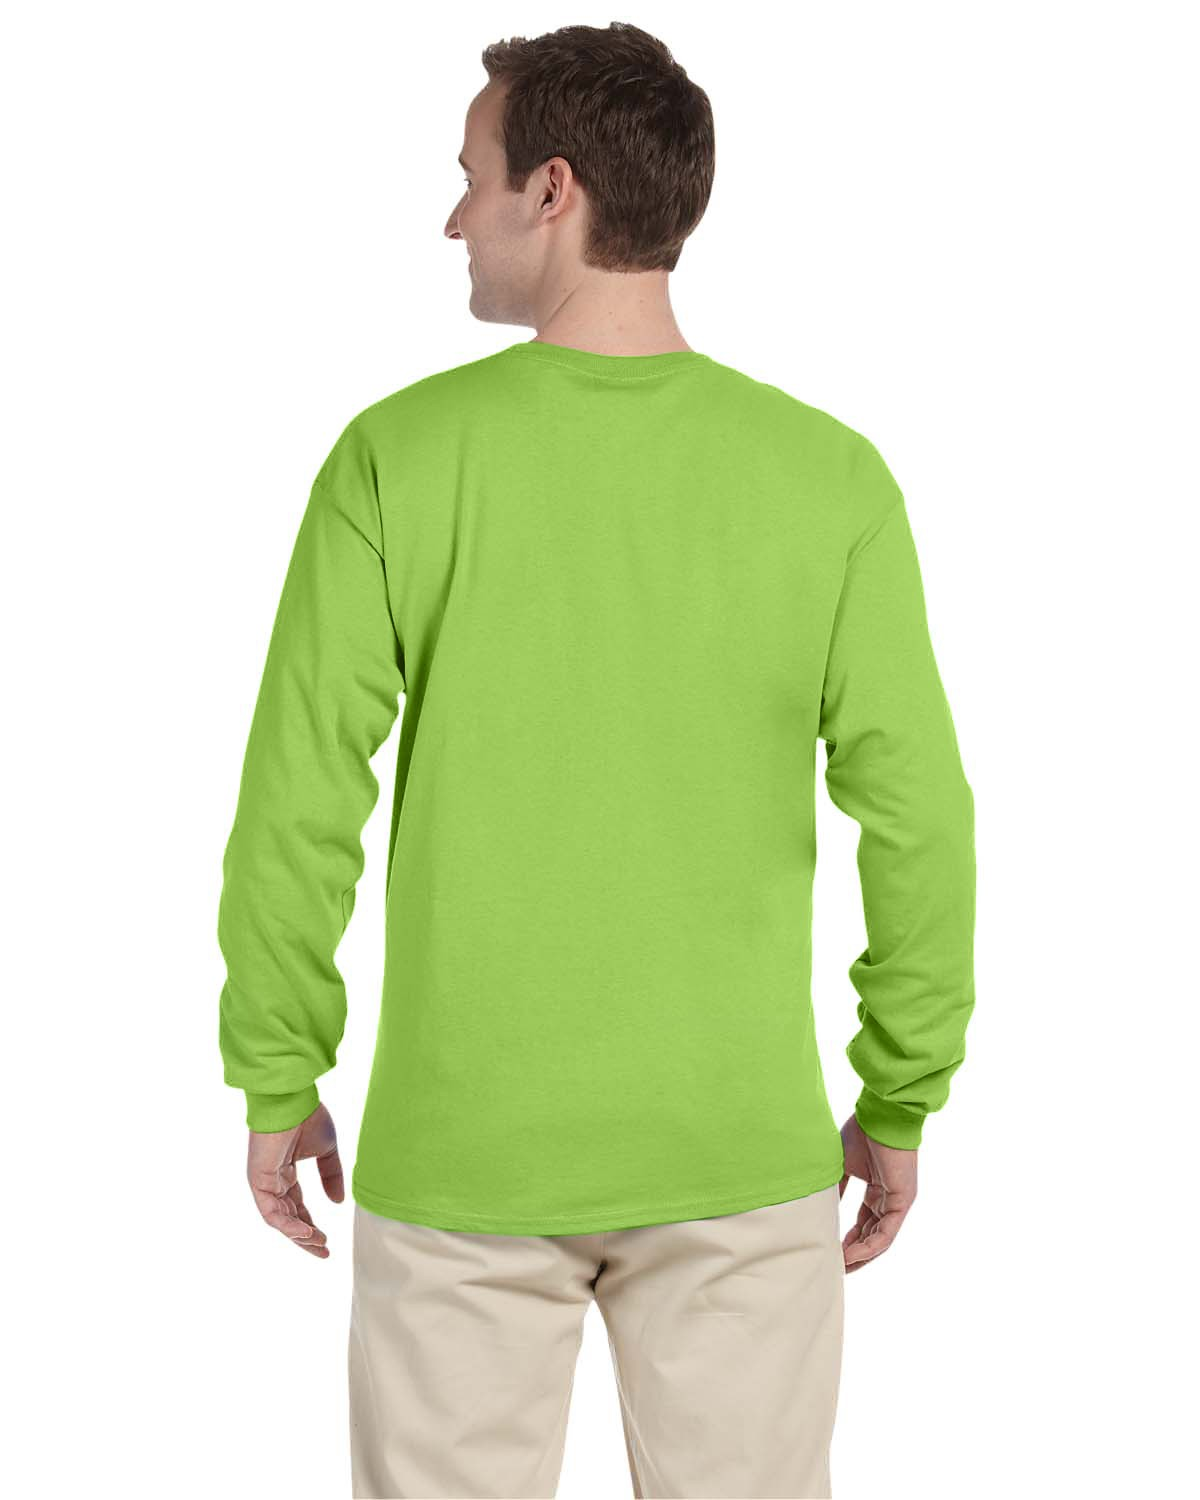 4930 Fruit of the Loom NEON GREEN